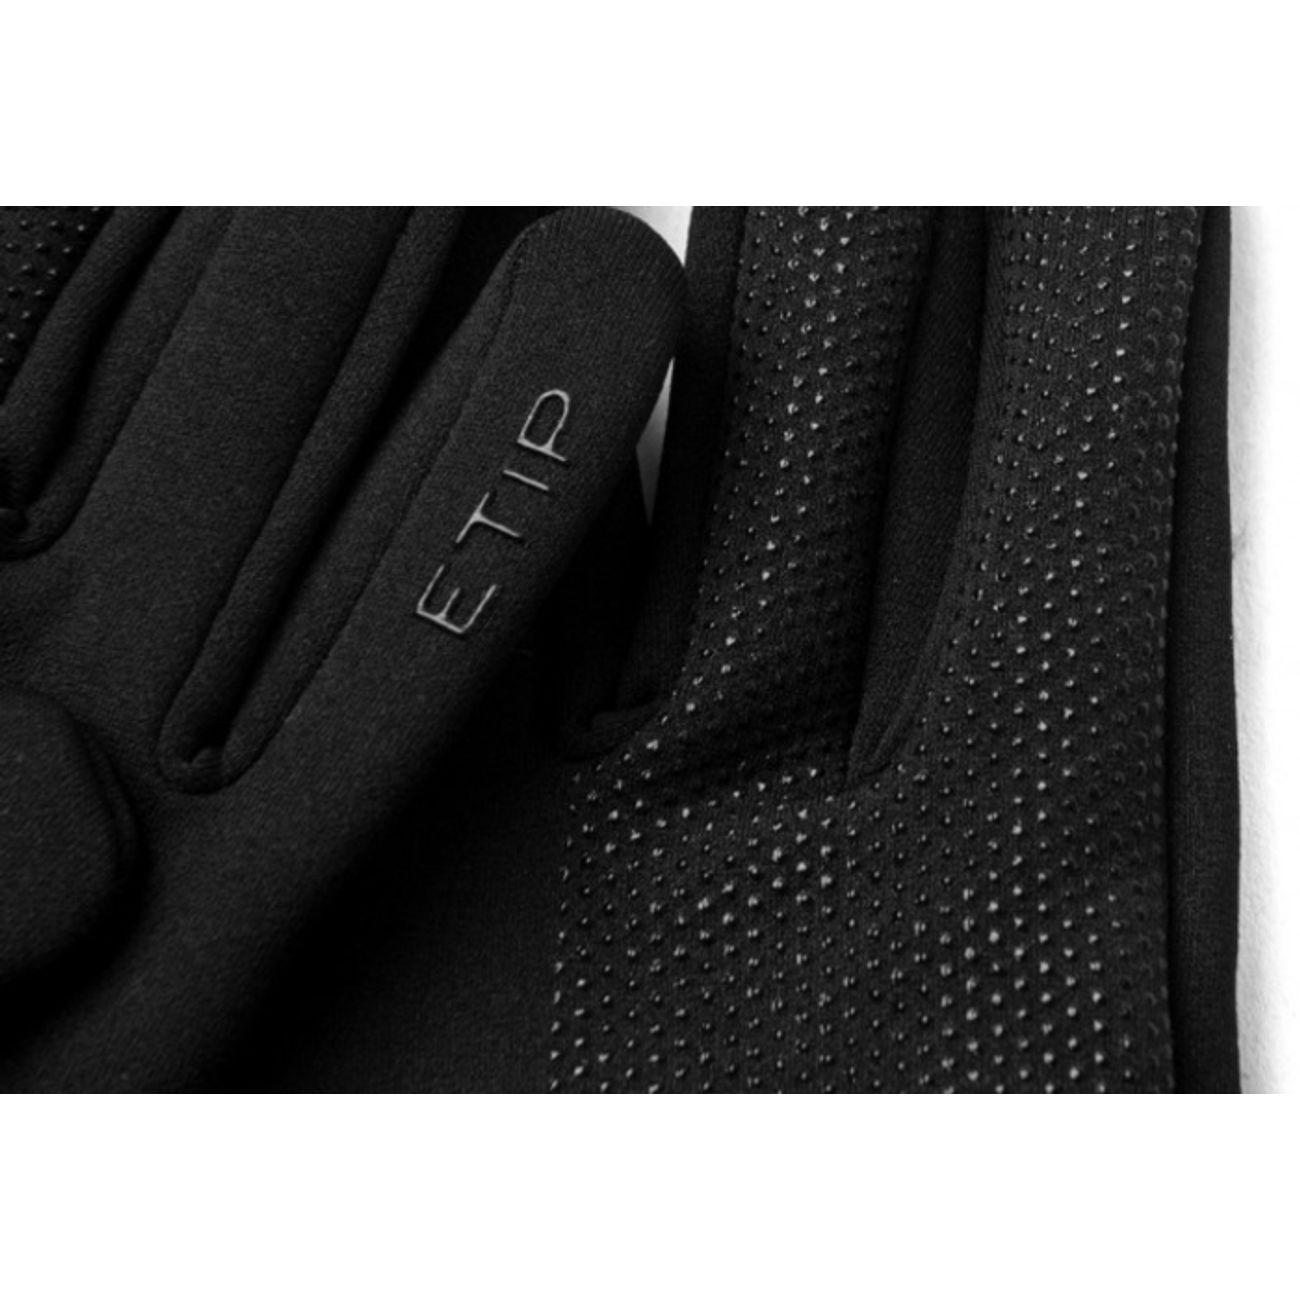 GANTS Multisport adulte THE NORTH FACE ETIP RECYCLED GLOVE